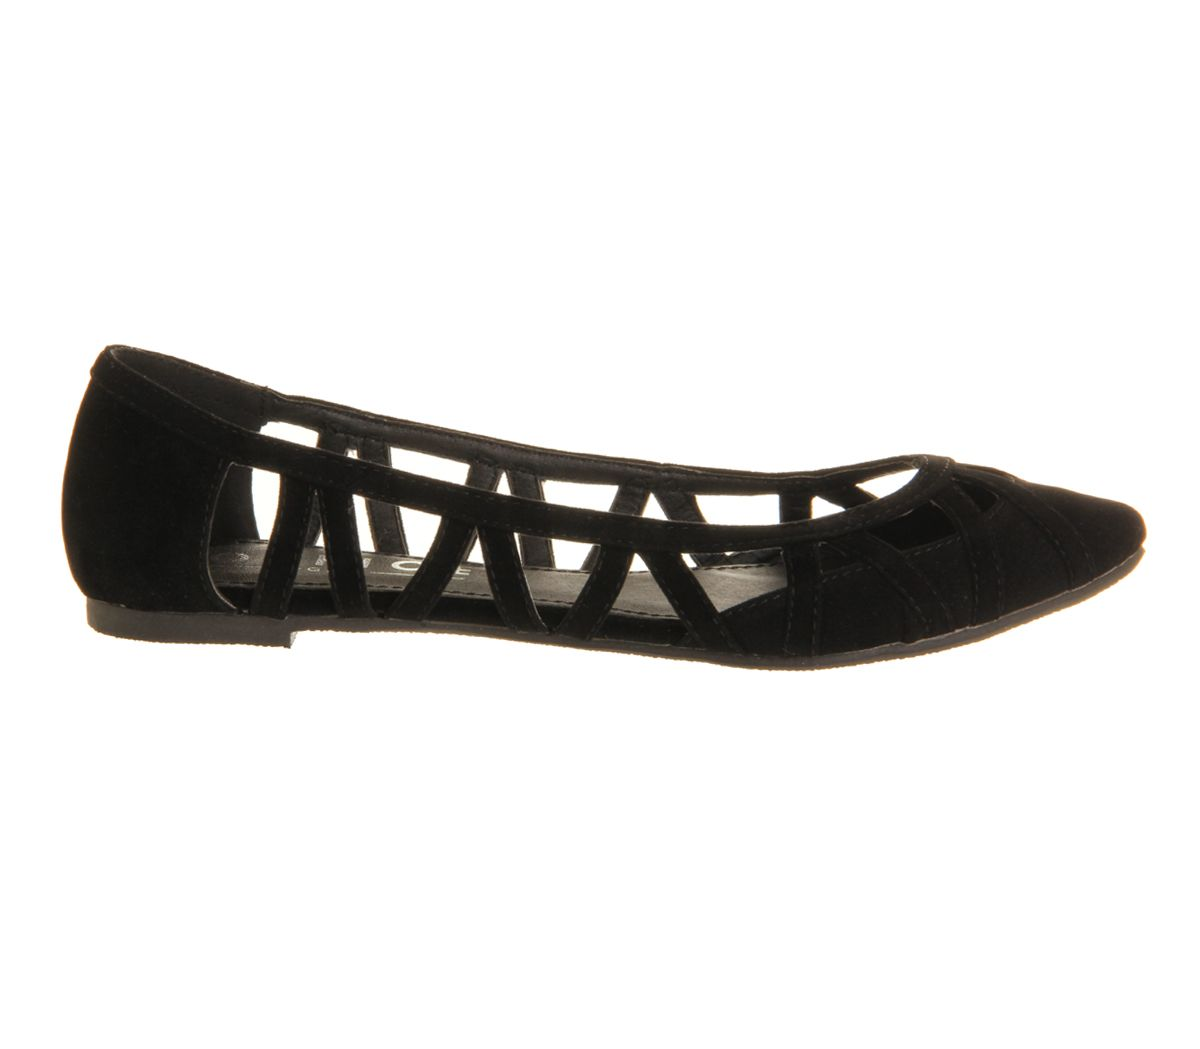 Veil cut out pump flat pumps